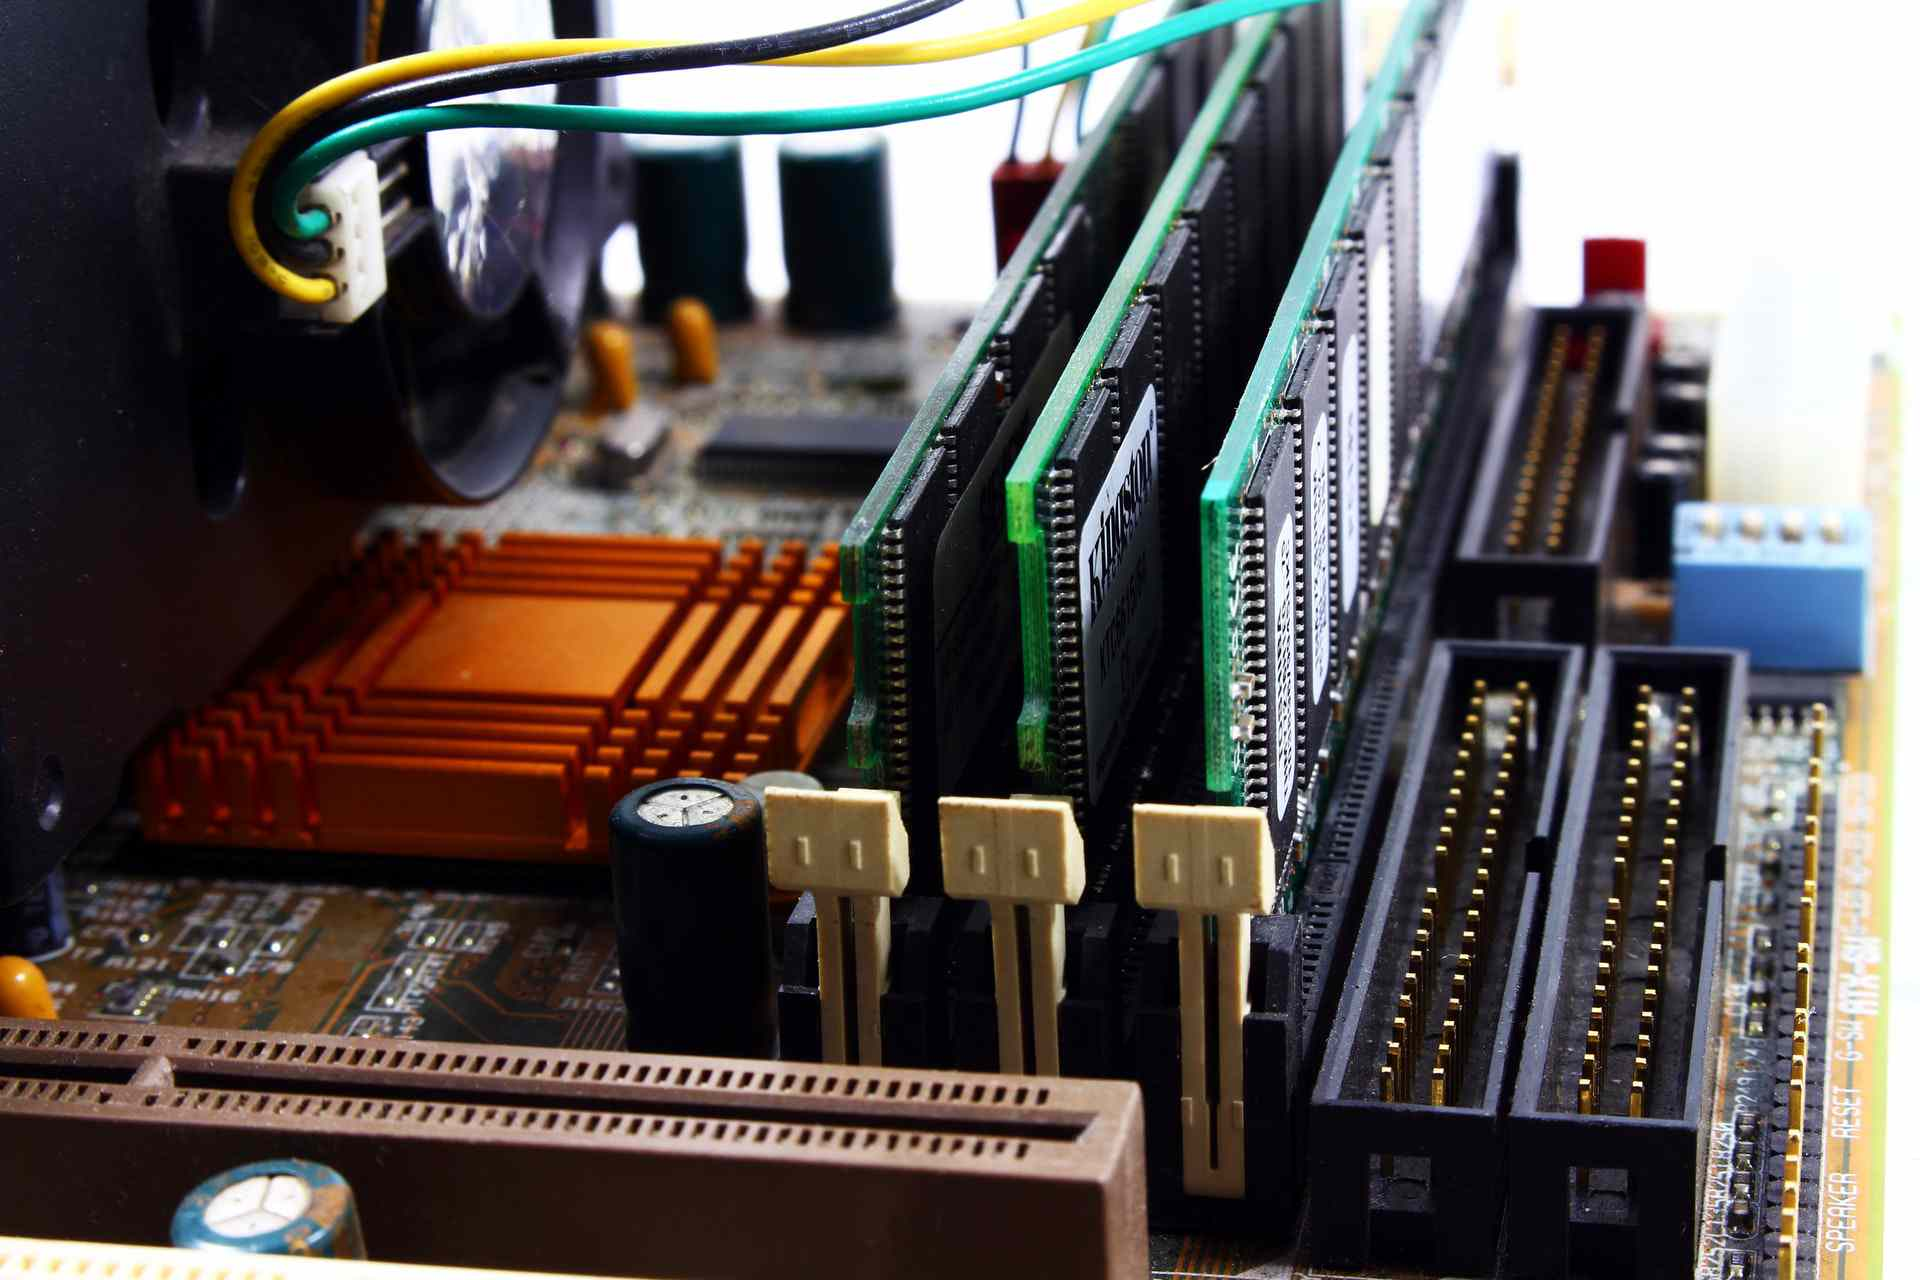 Plugging RAM modules into RAM slots in motherboard